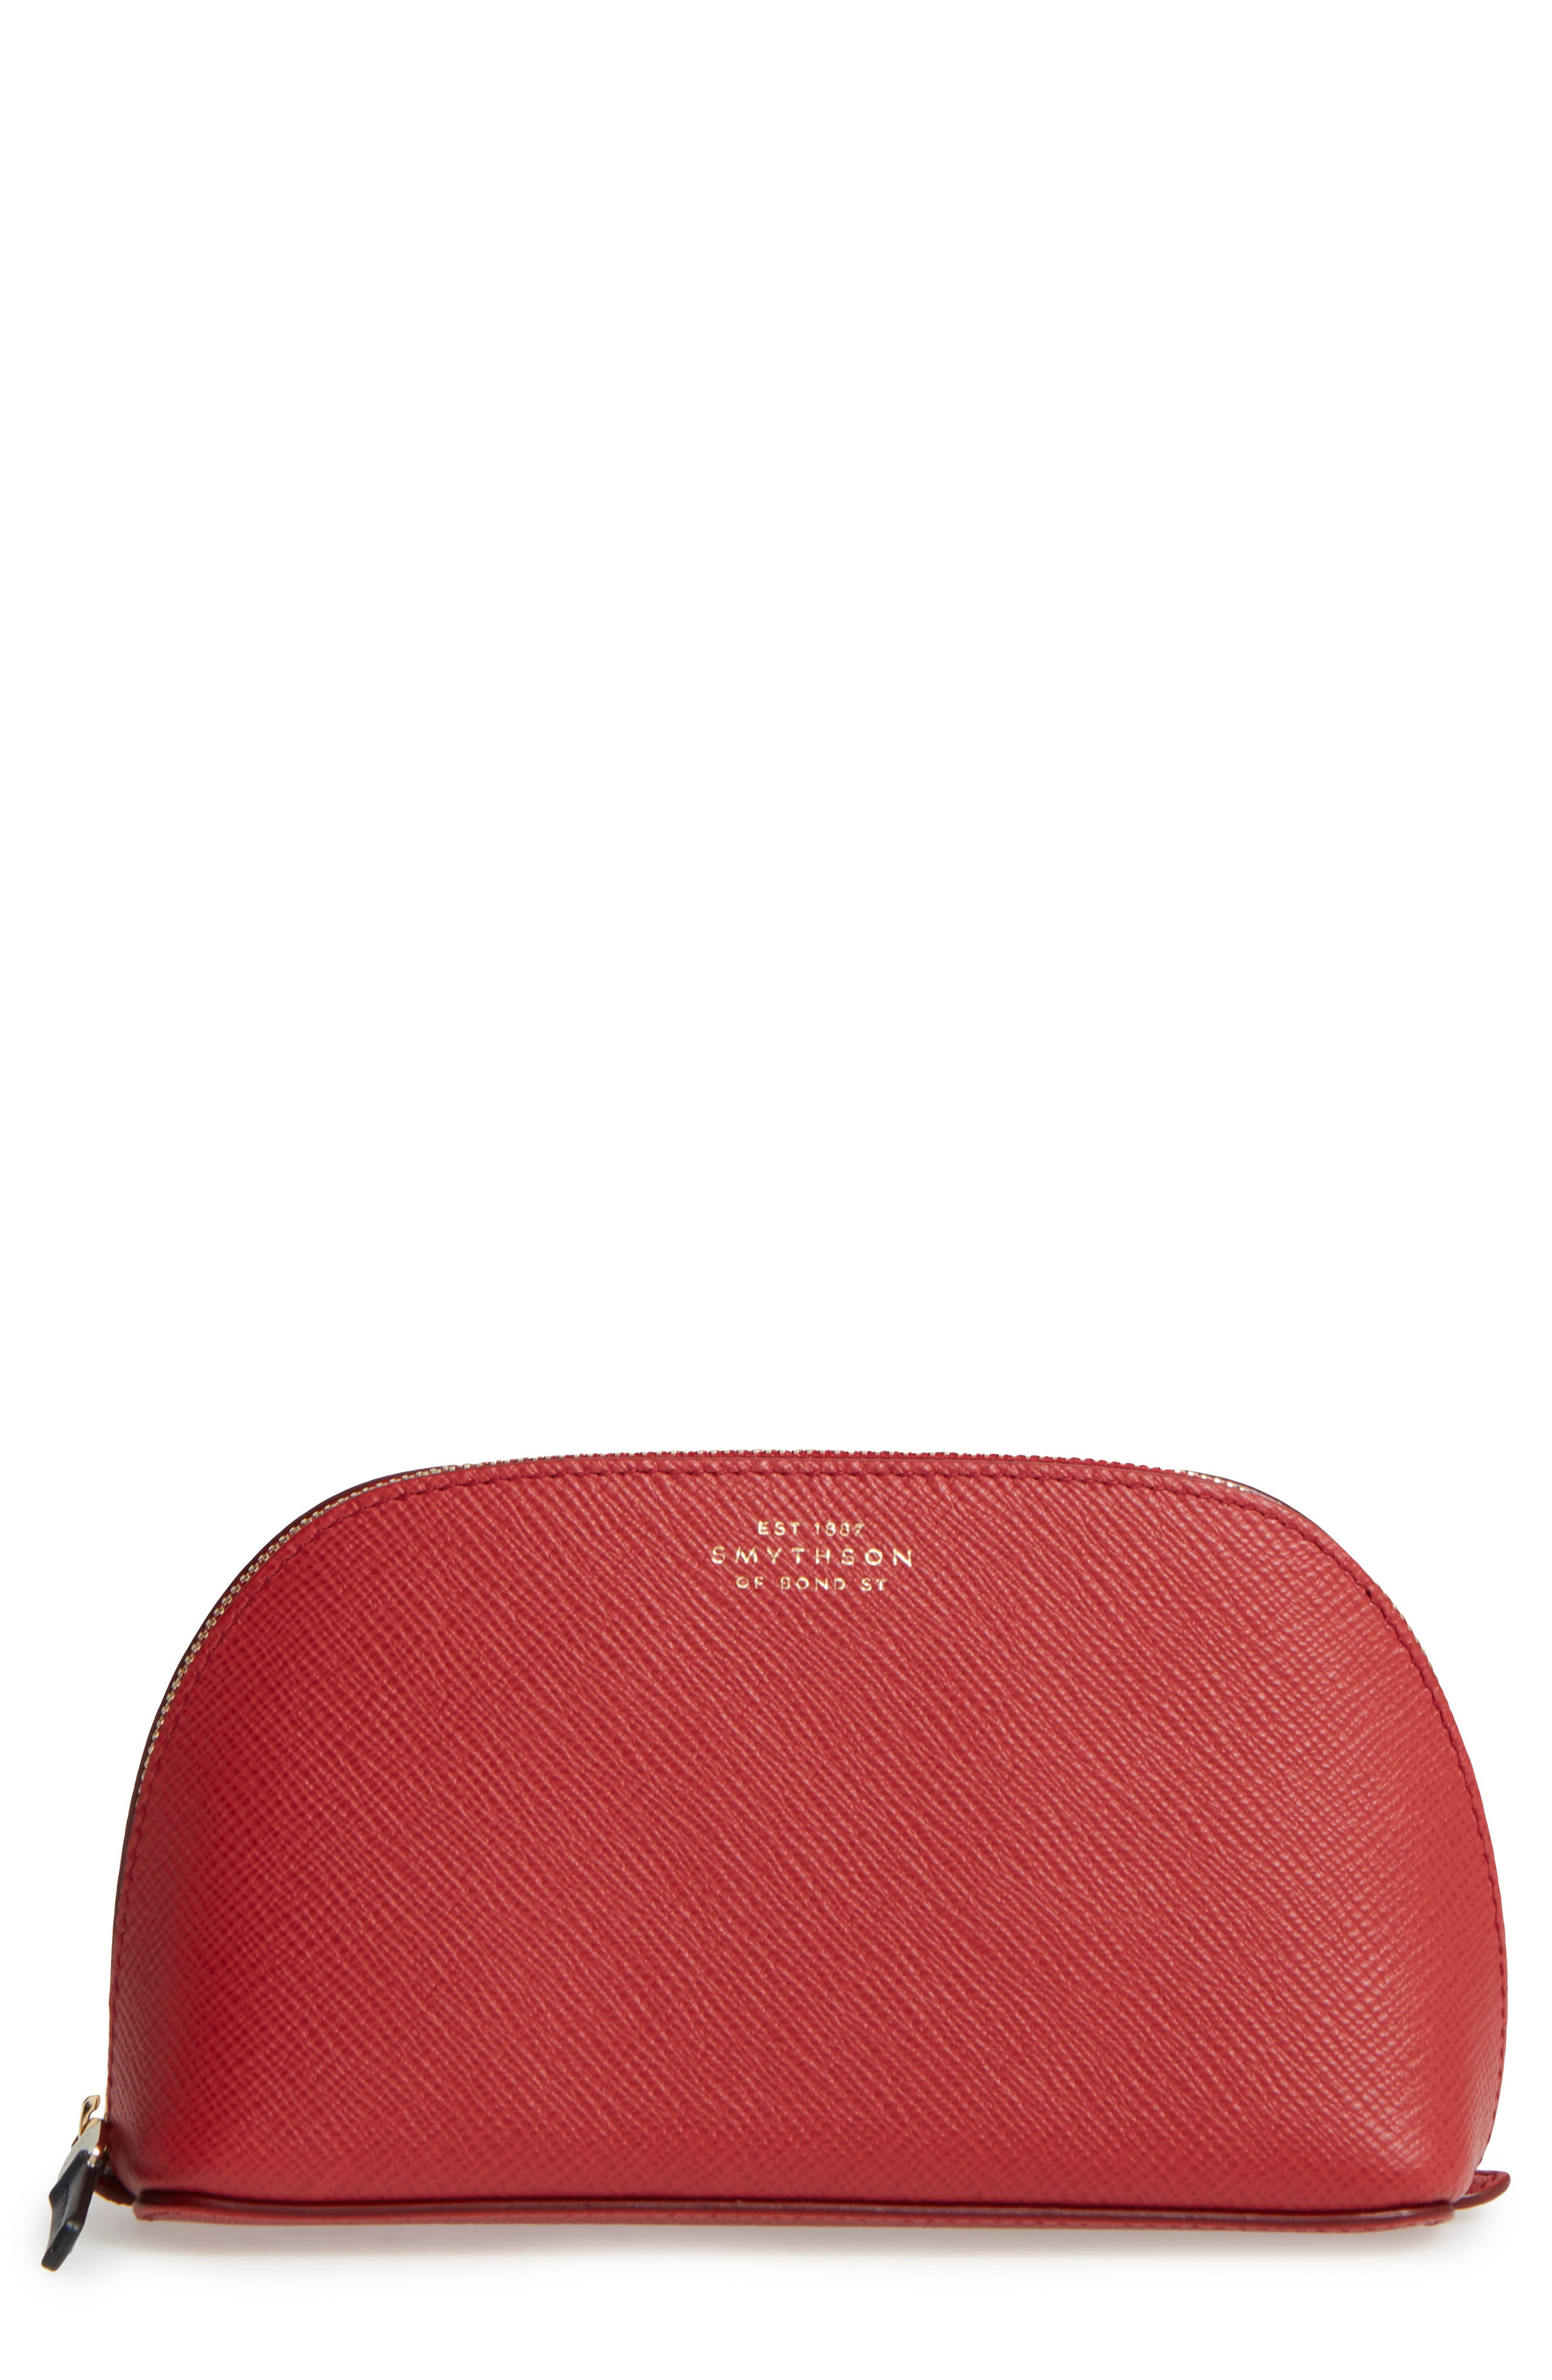 Small Calfskin Leather Cosmetics Case, Main, color, 600